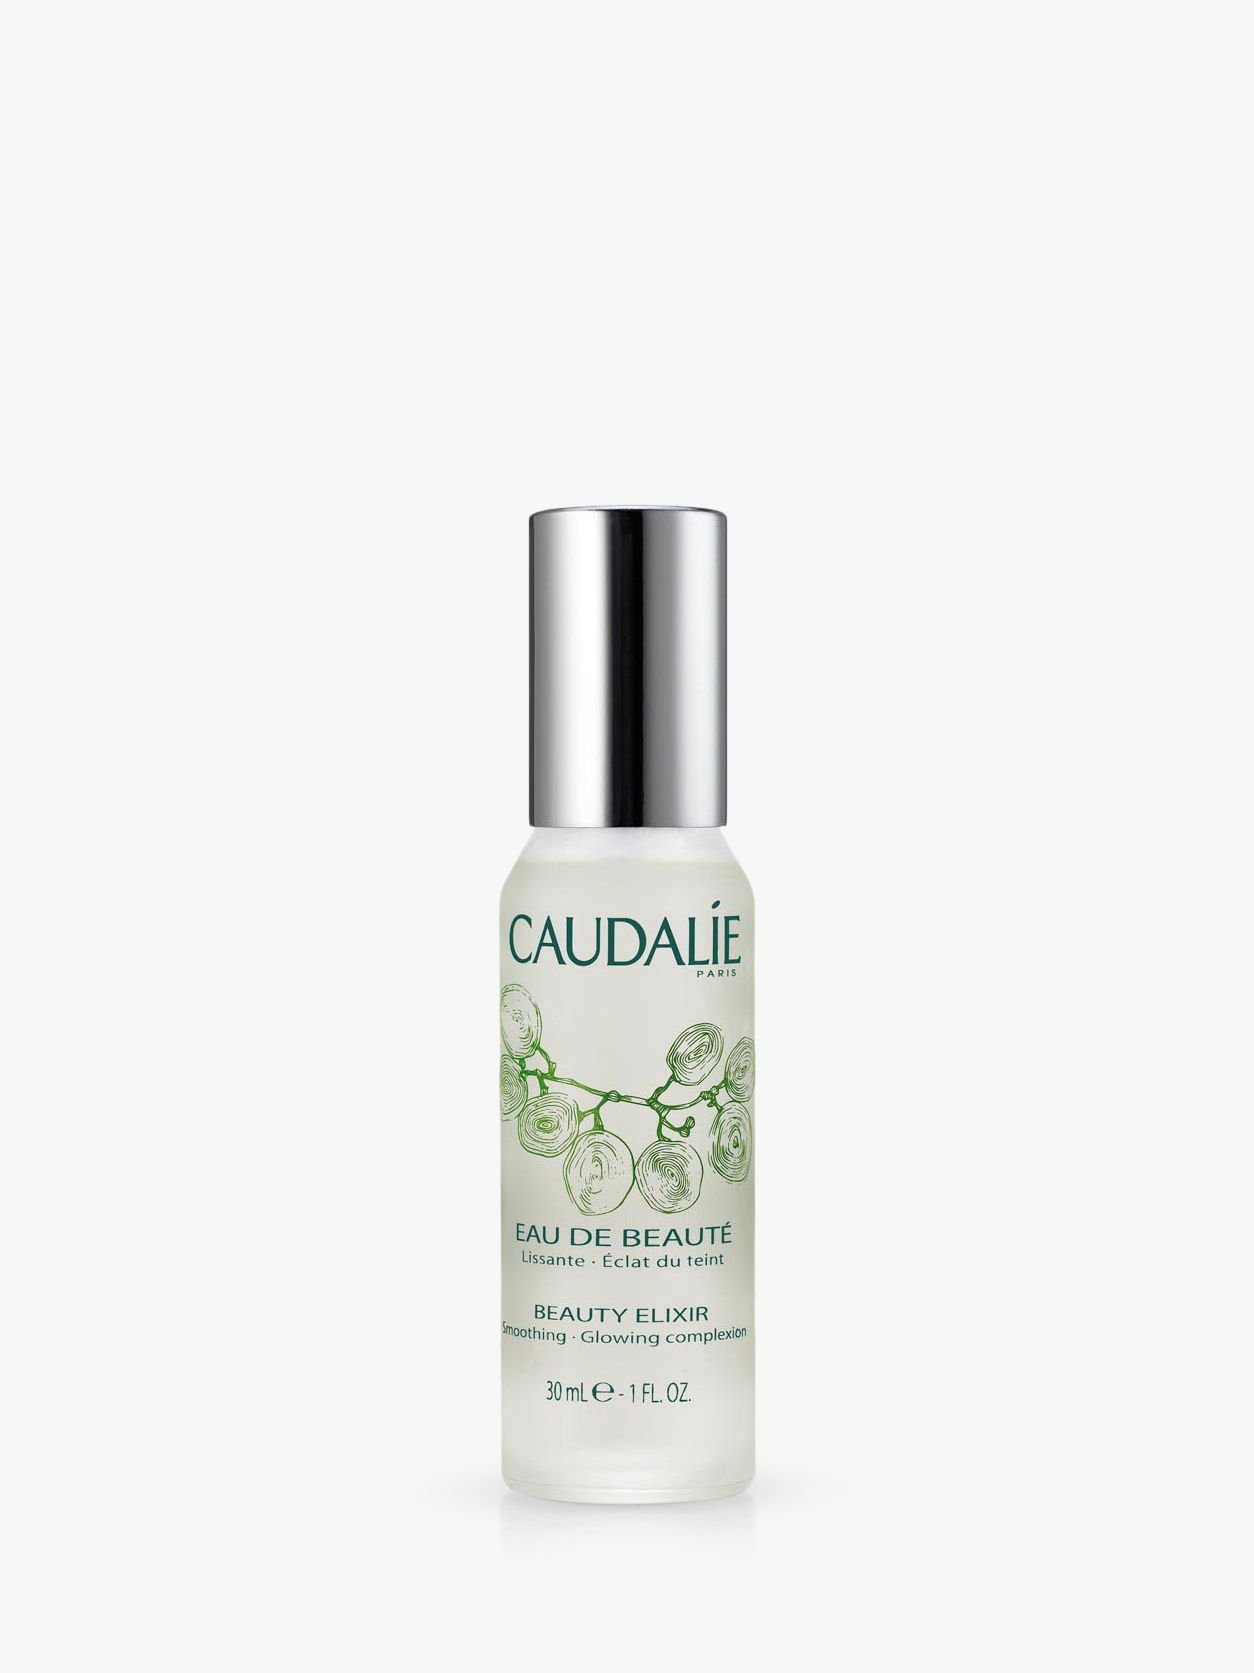 Caudalie Caudalie Beauty Elixir, 30ml